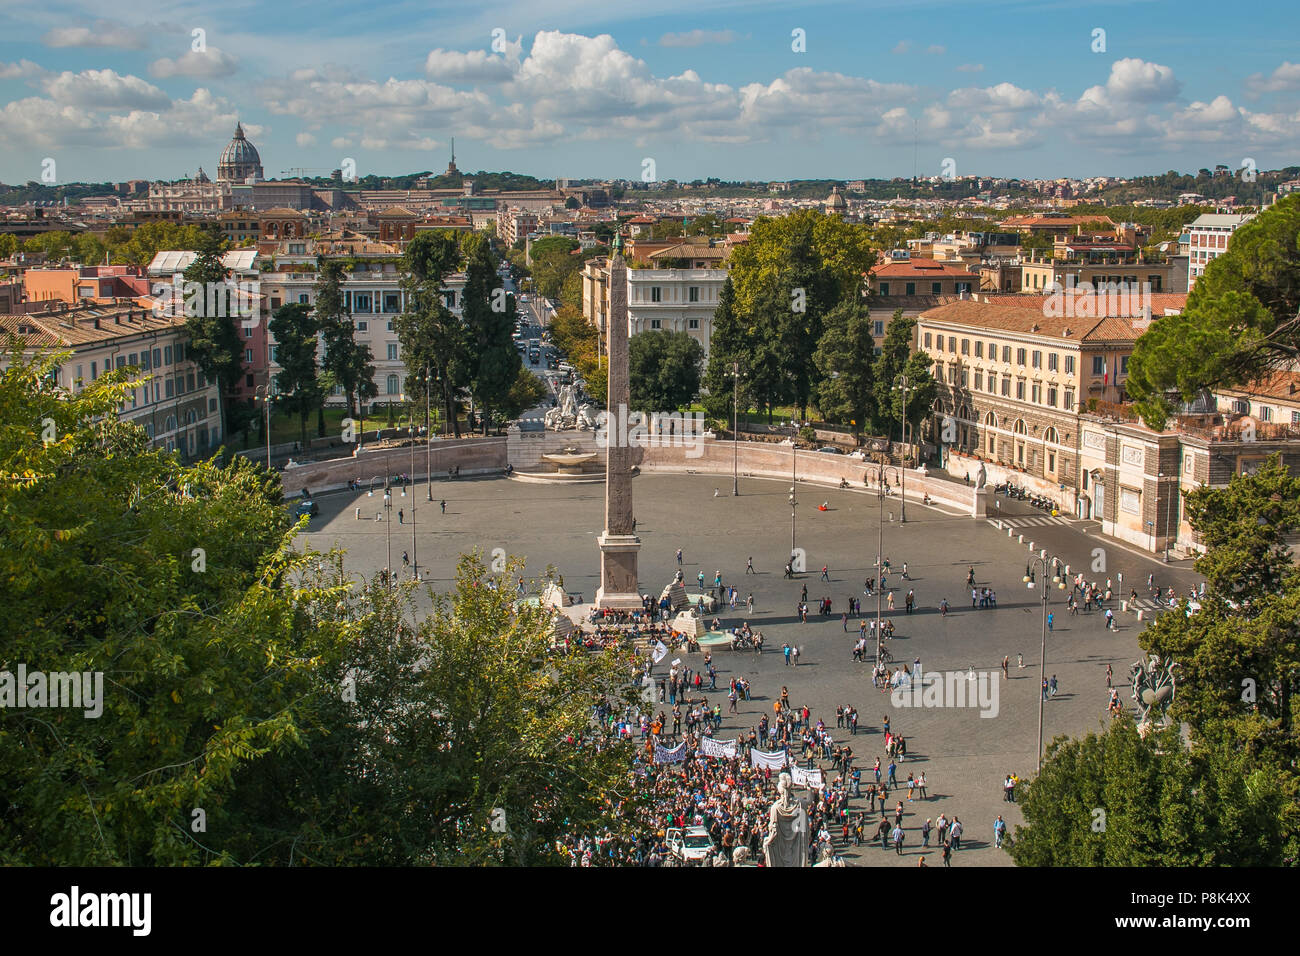 ROME, ITALY - OCTOBER 10, 2017: Aerial view of Piazza del Popolo in Rome, Italy Stock Photo